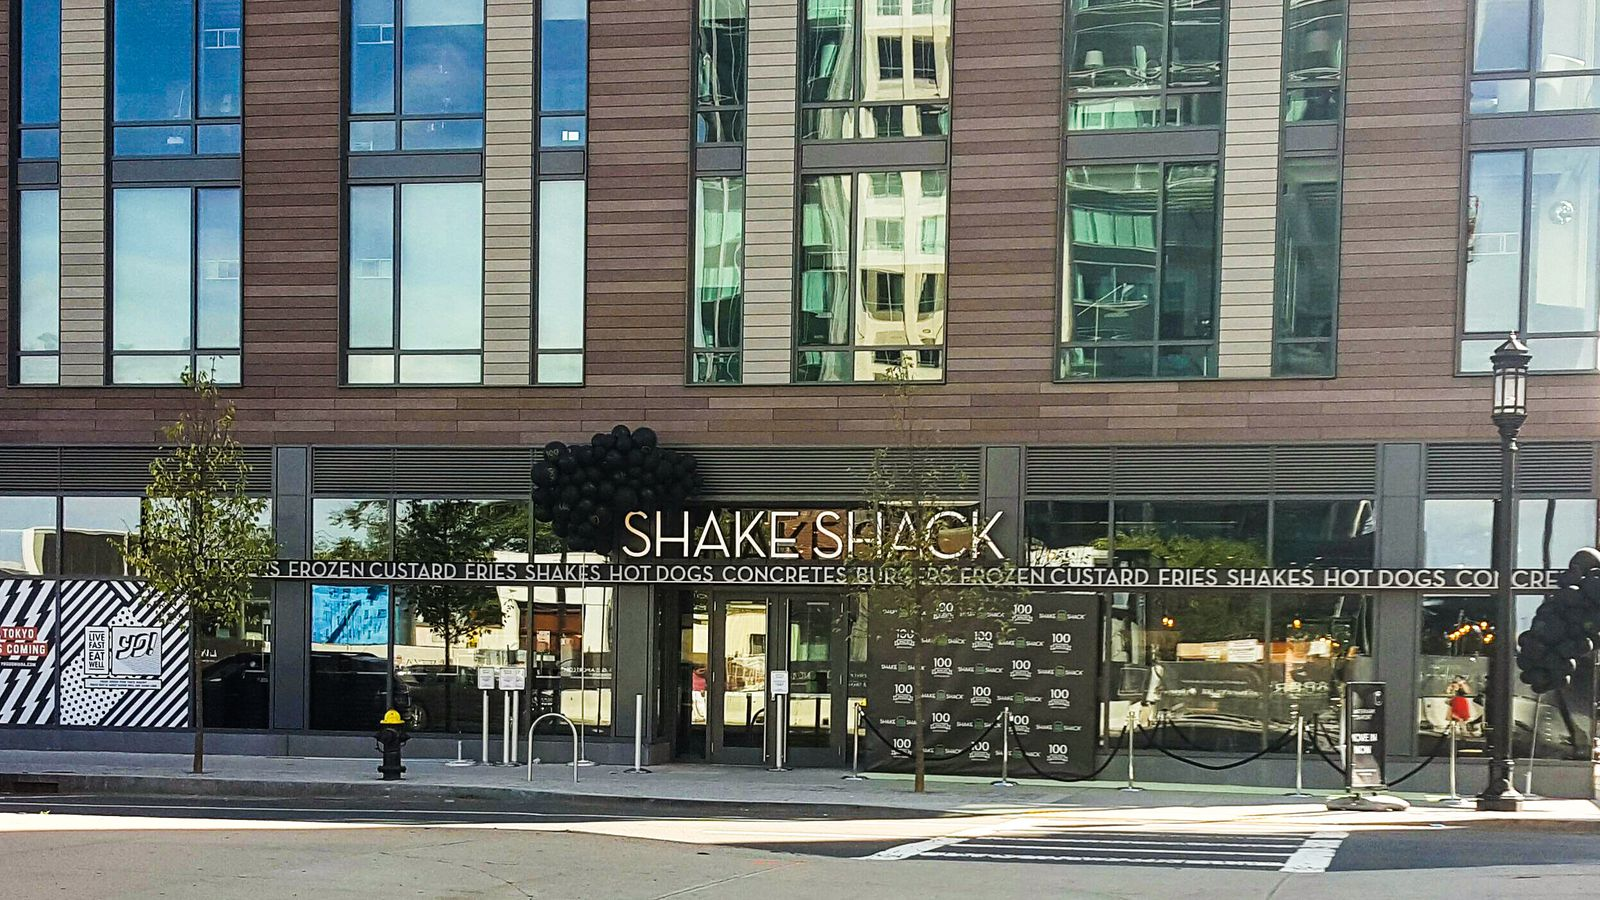 The 100th Shake Shack Opens Today, and It's Right Here in Boston - Eater Boston